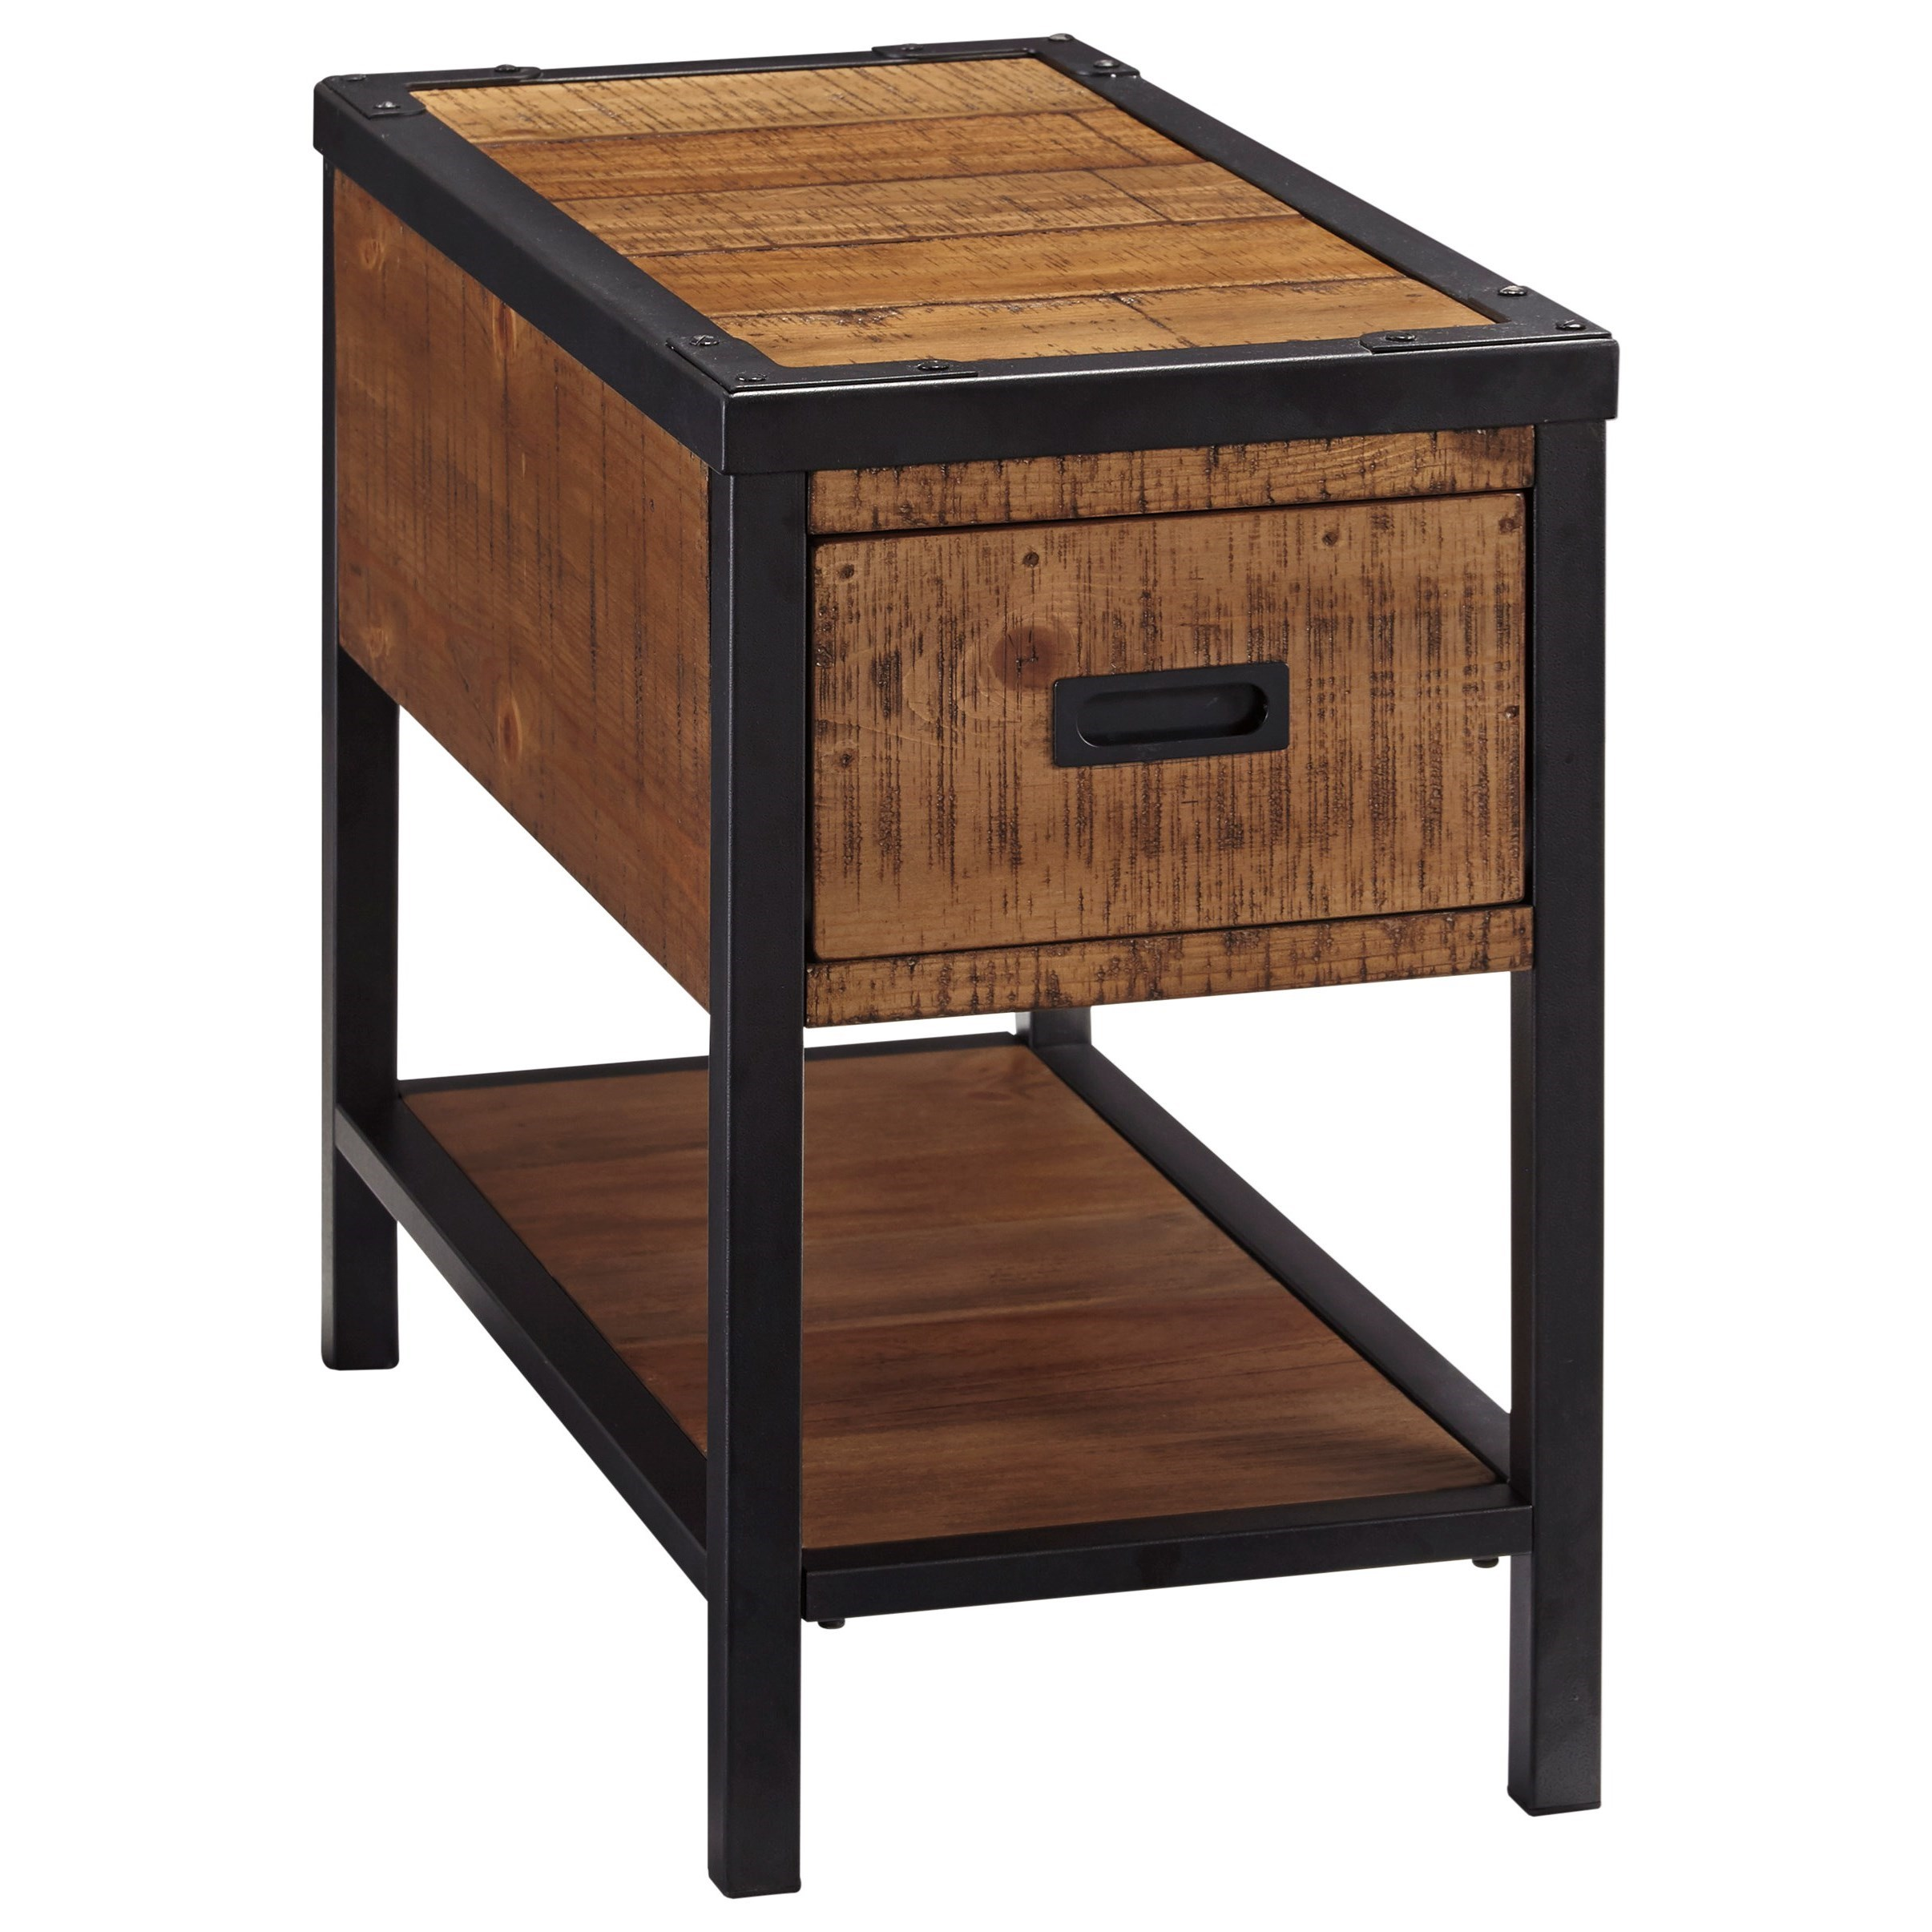 Signature Design by Ashley Kalean Chair Side End Table - Item Number: T817-7